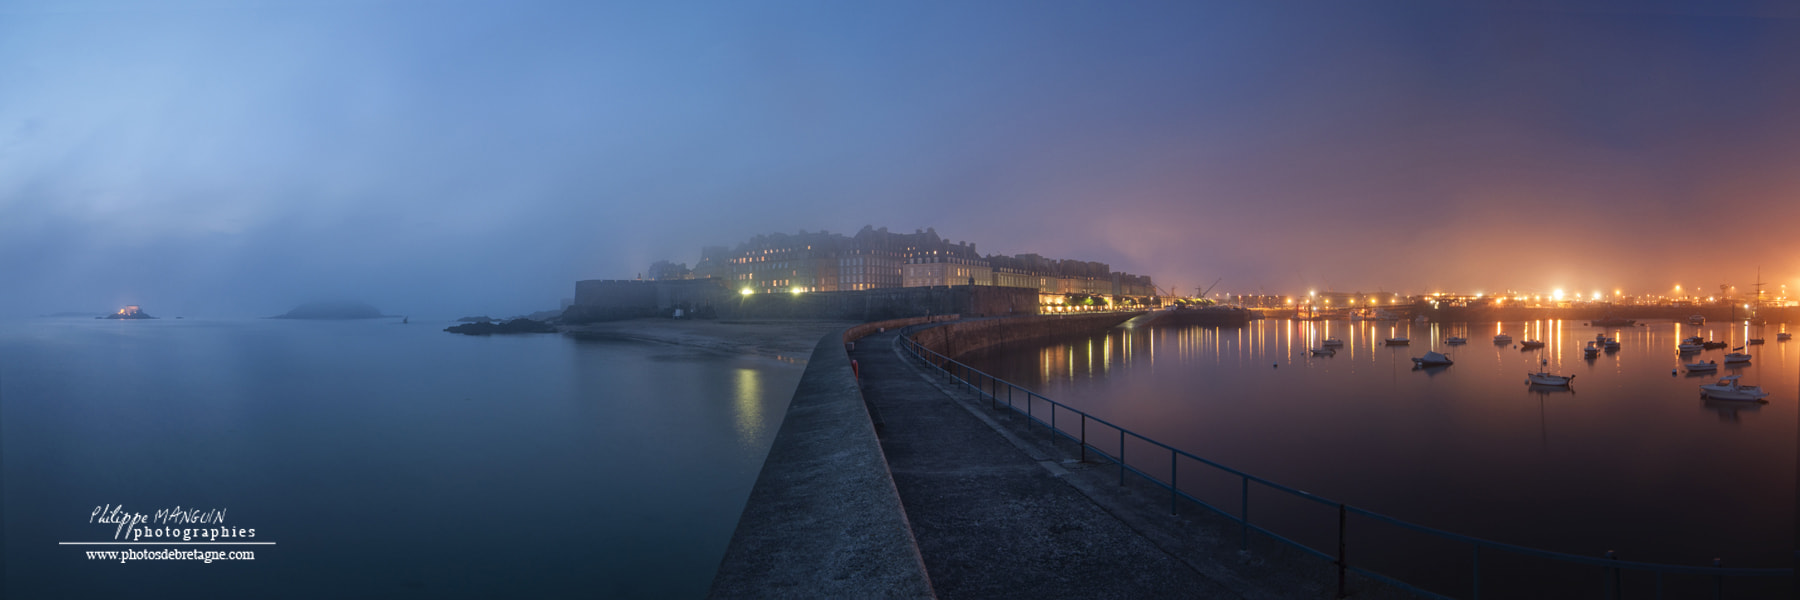 Photograph Saint malo - panoramique by Philippe MANGUIN on 500px